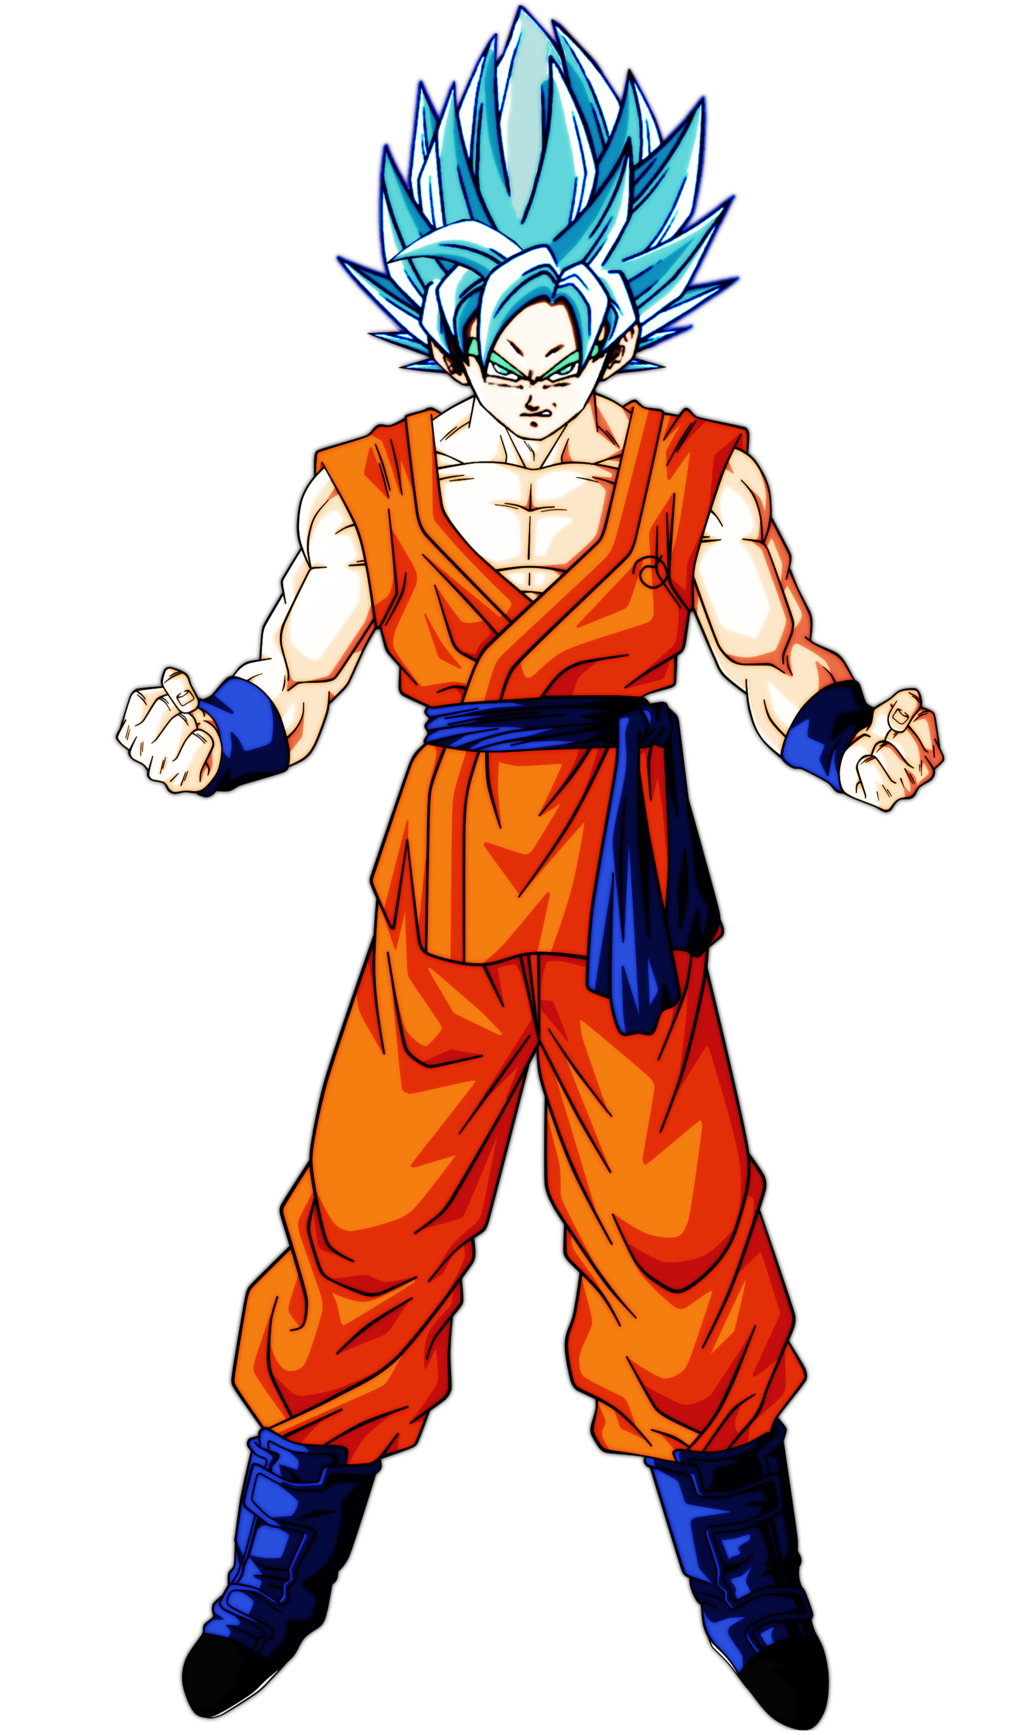 Super Saiyan God Goku Wallpaper